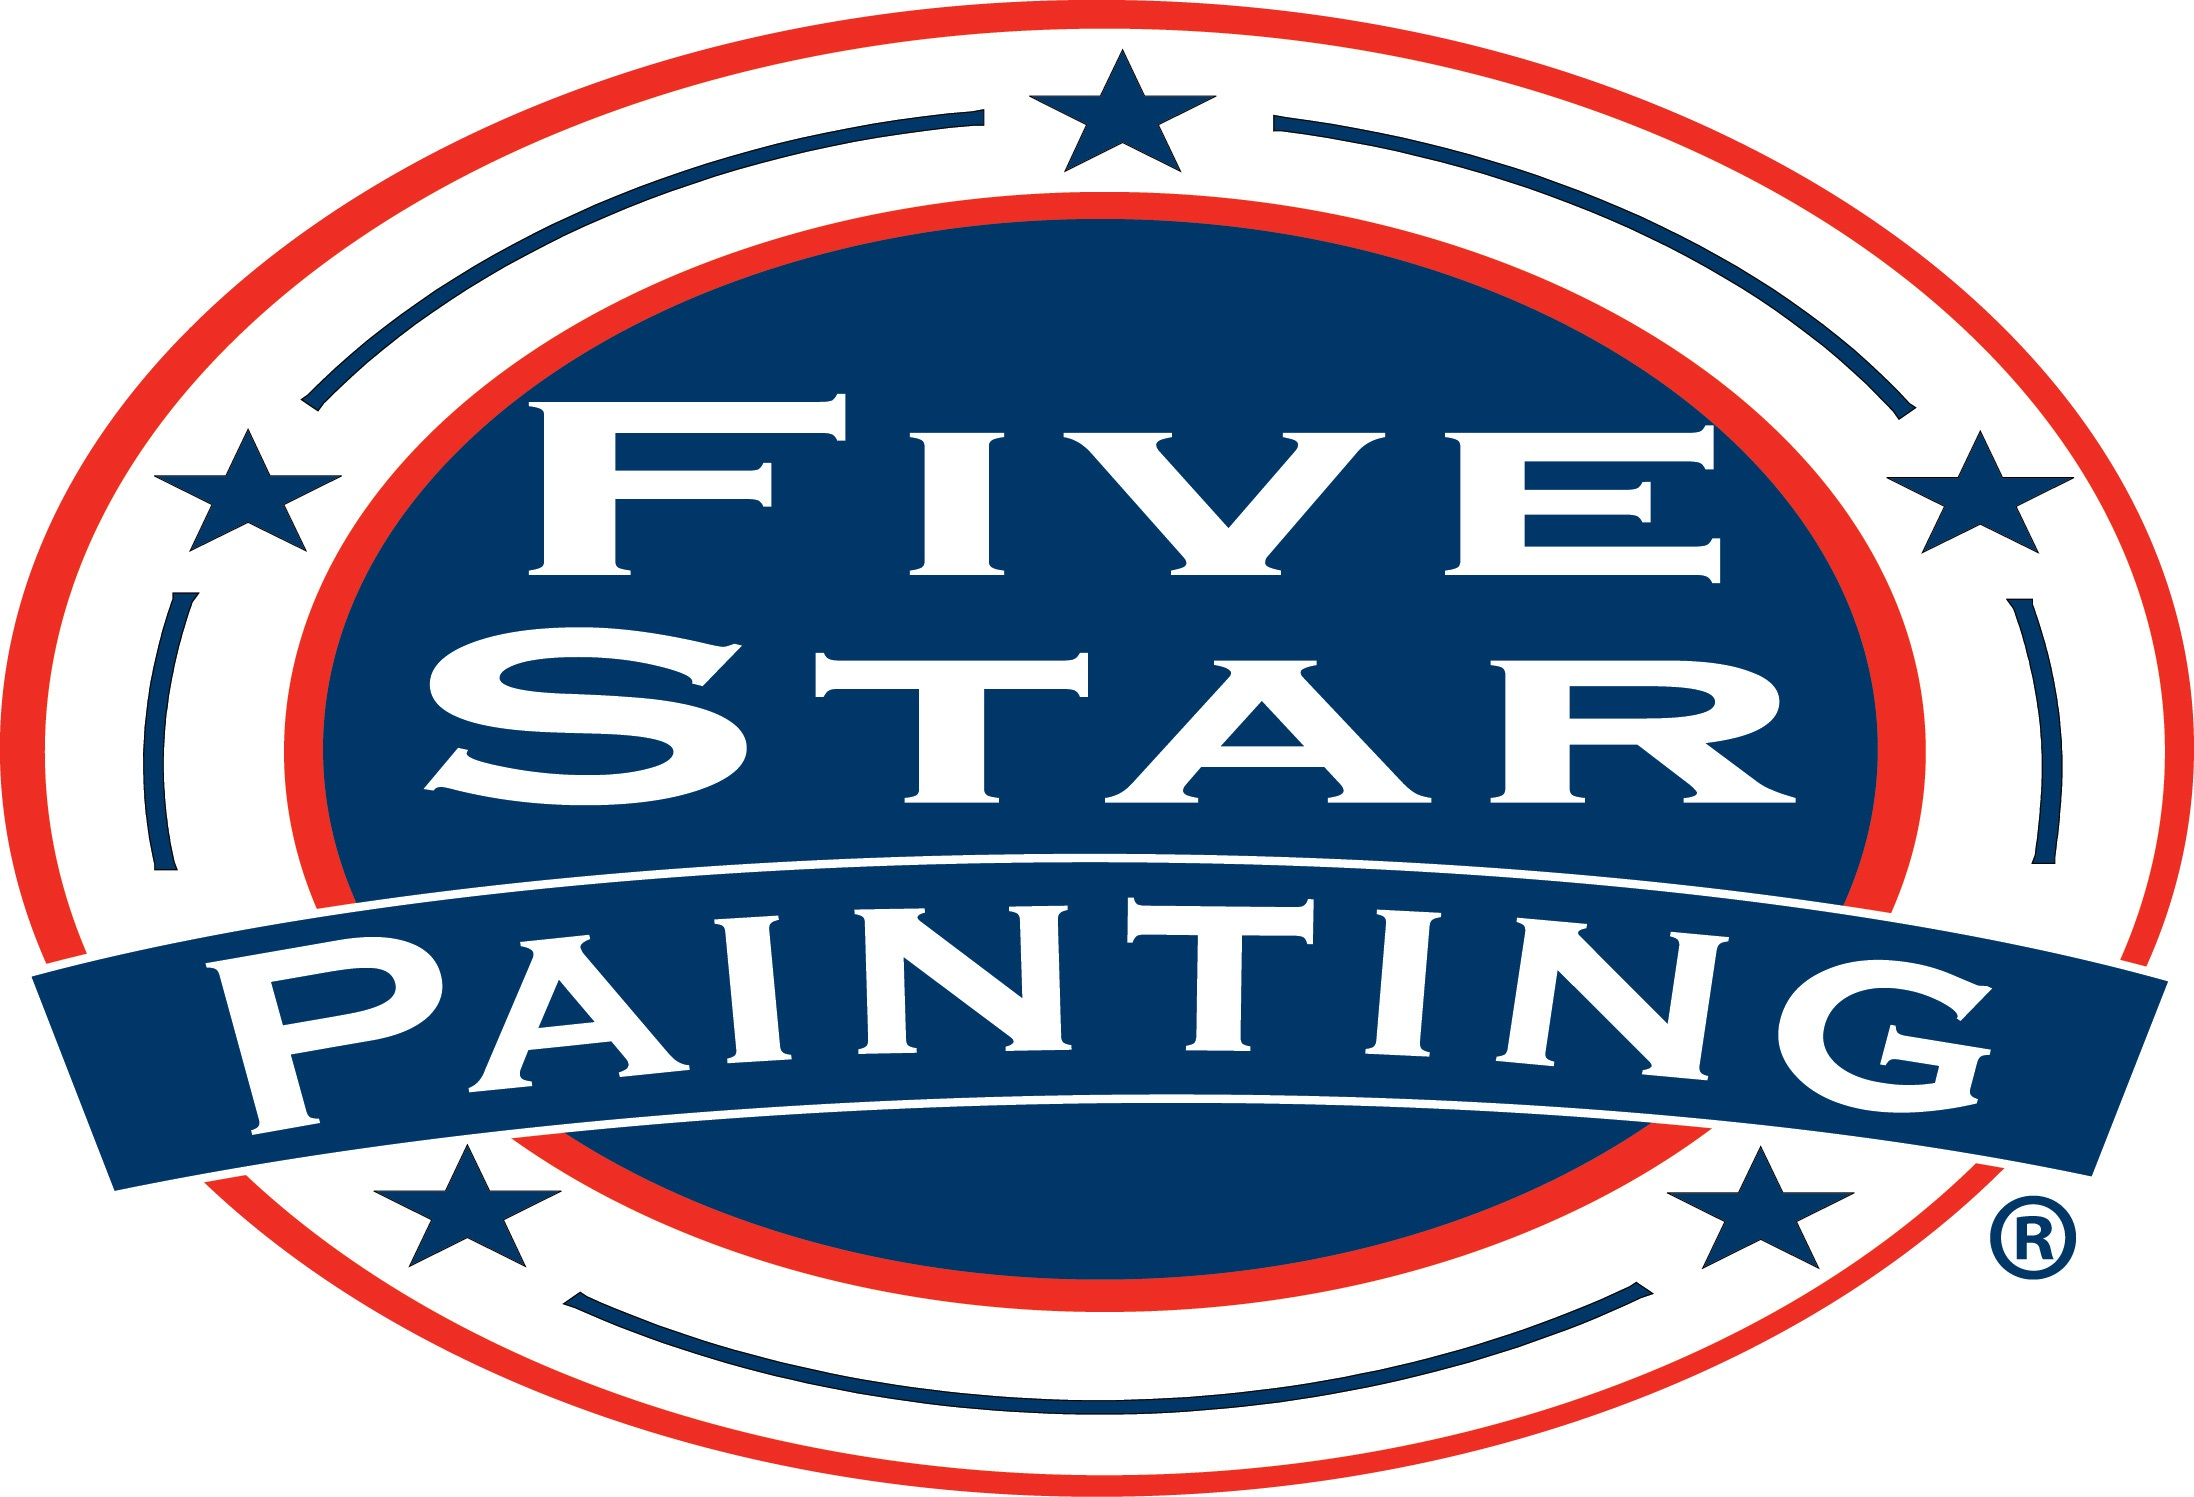 Five Star Painting of South Bend logo